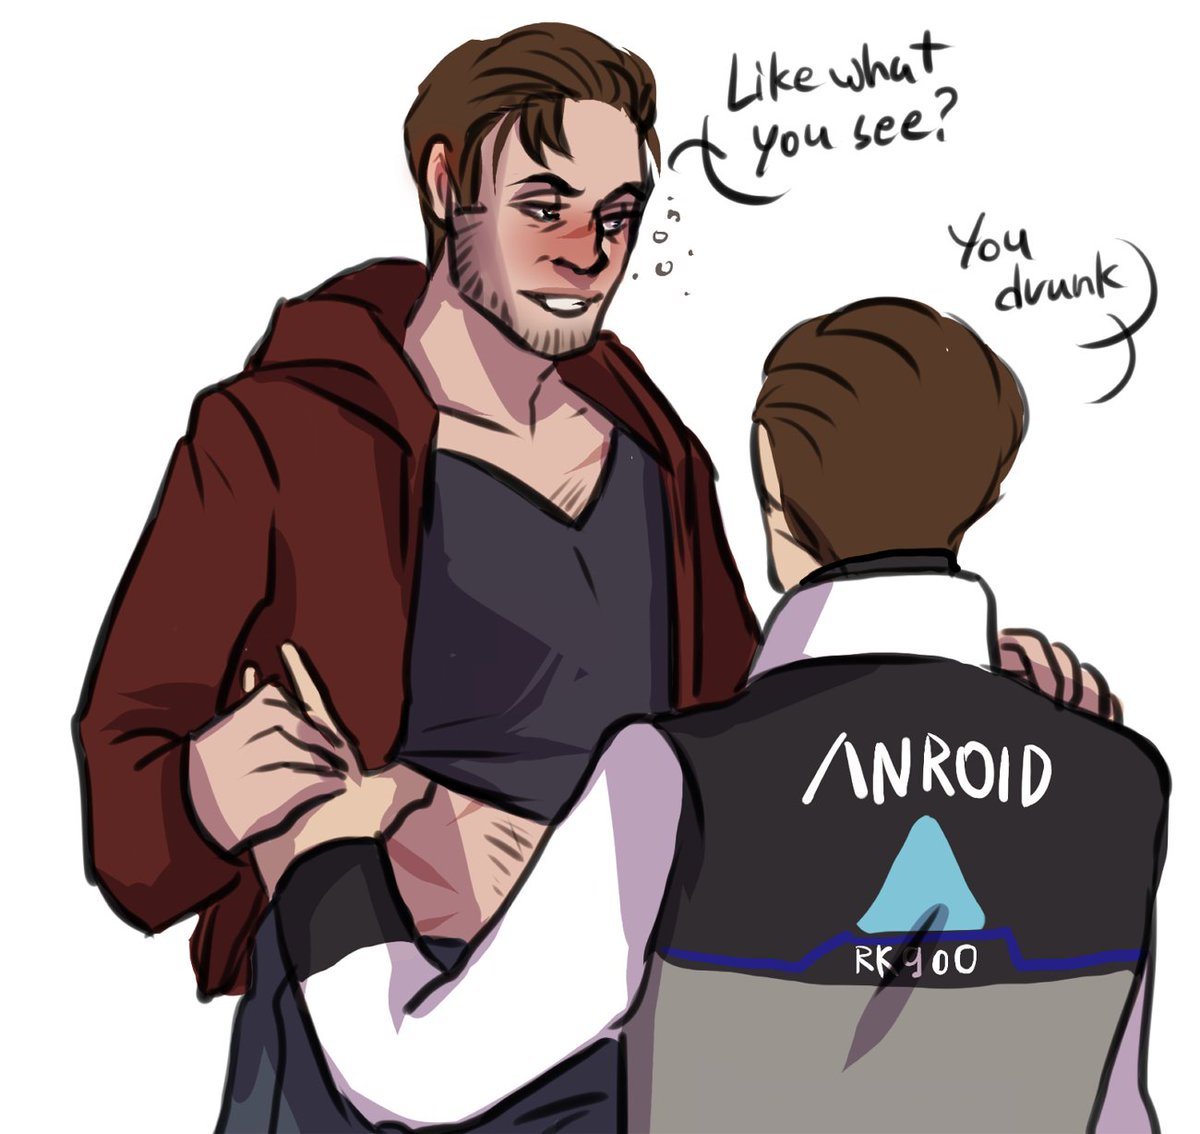 drunk gavin seducing robocop is here #Reed900 #900Gavin<br>http://pic.twitter.com/R4dZQNbFuF